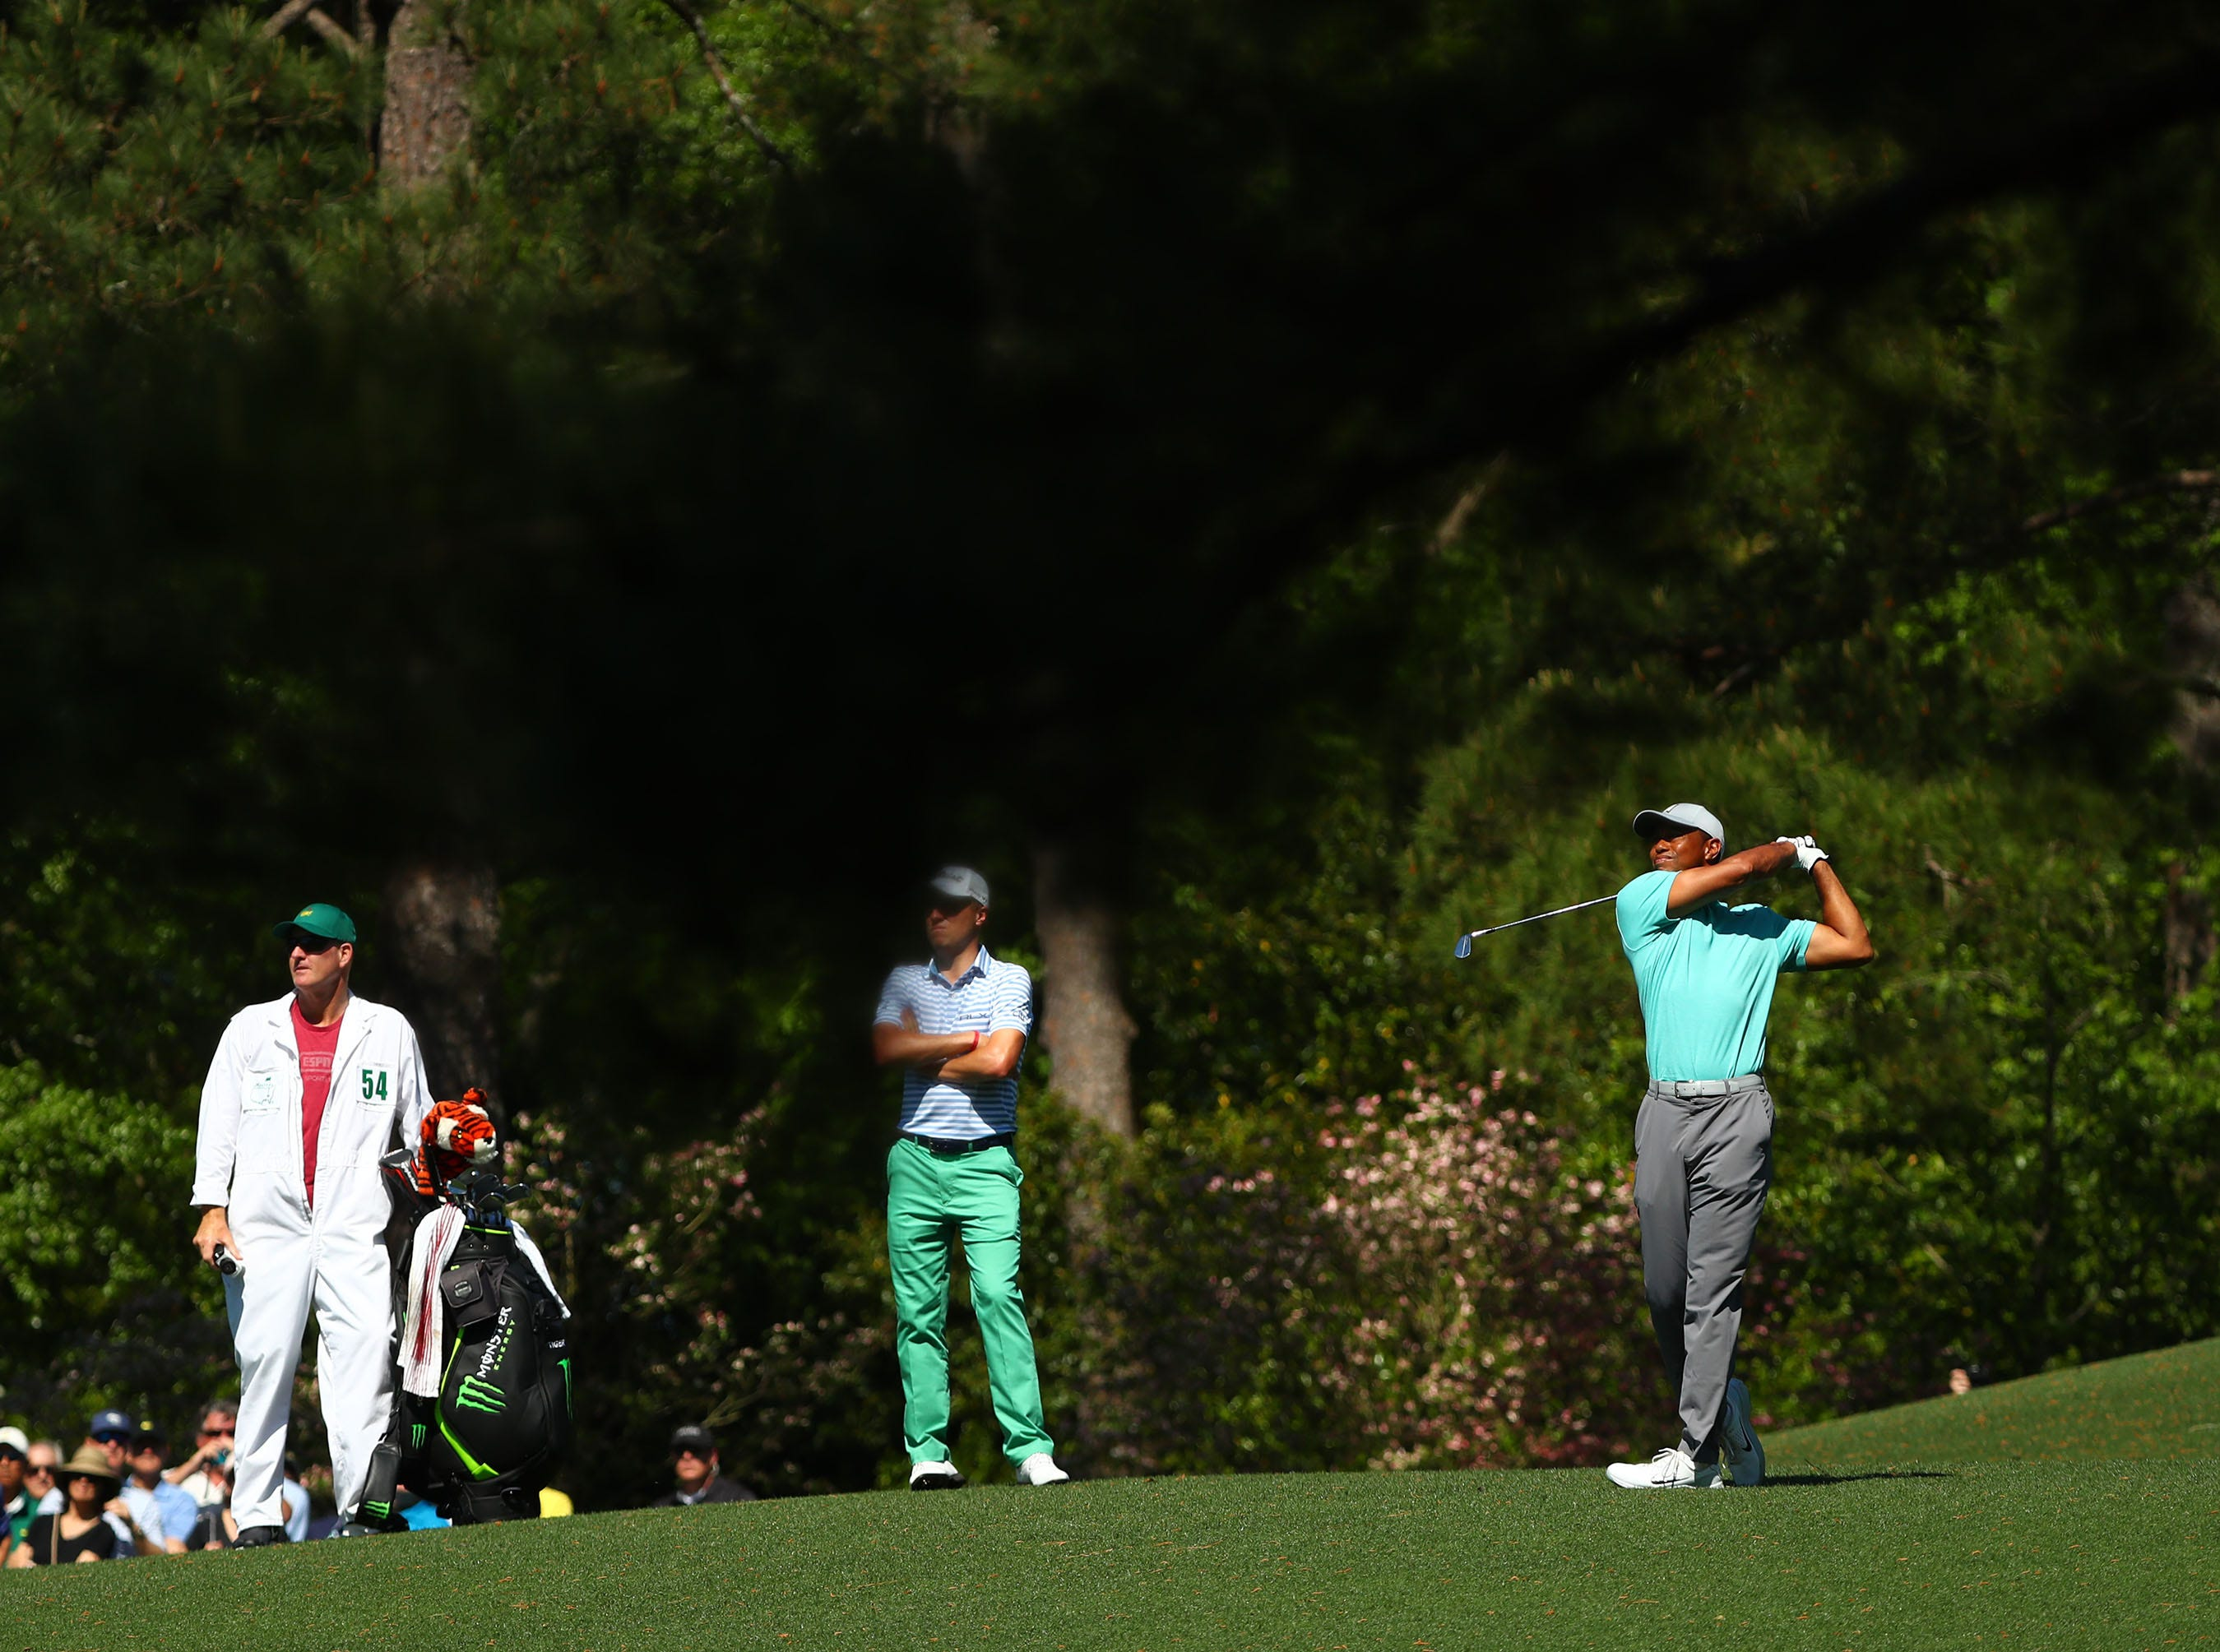 Apr 10, 2019; Augusta, GA, USA; Masters champion Tiger Woods plays a shot on the second hole during a practice round for The Masters golf tournament at Augusta National Golf Club. Mandatory Credit: Rob Schumacher-USA TODAY Sports